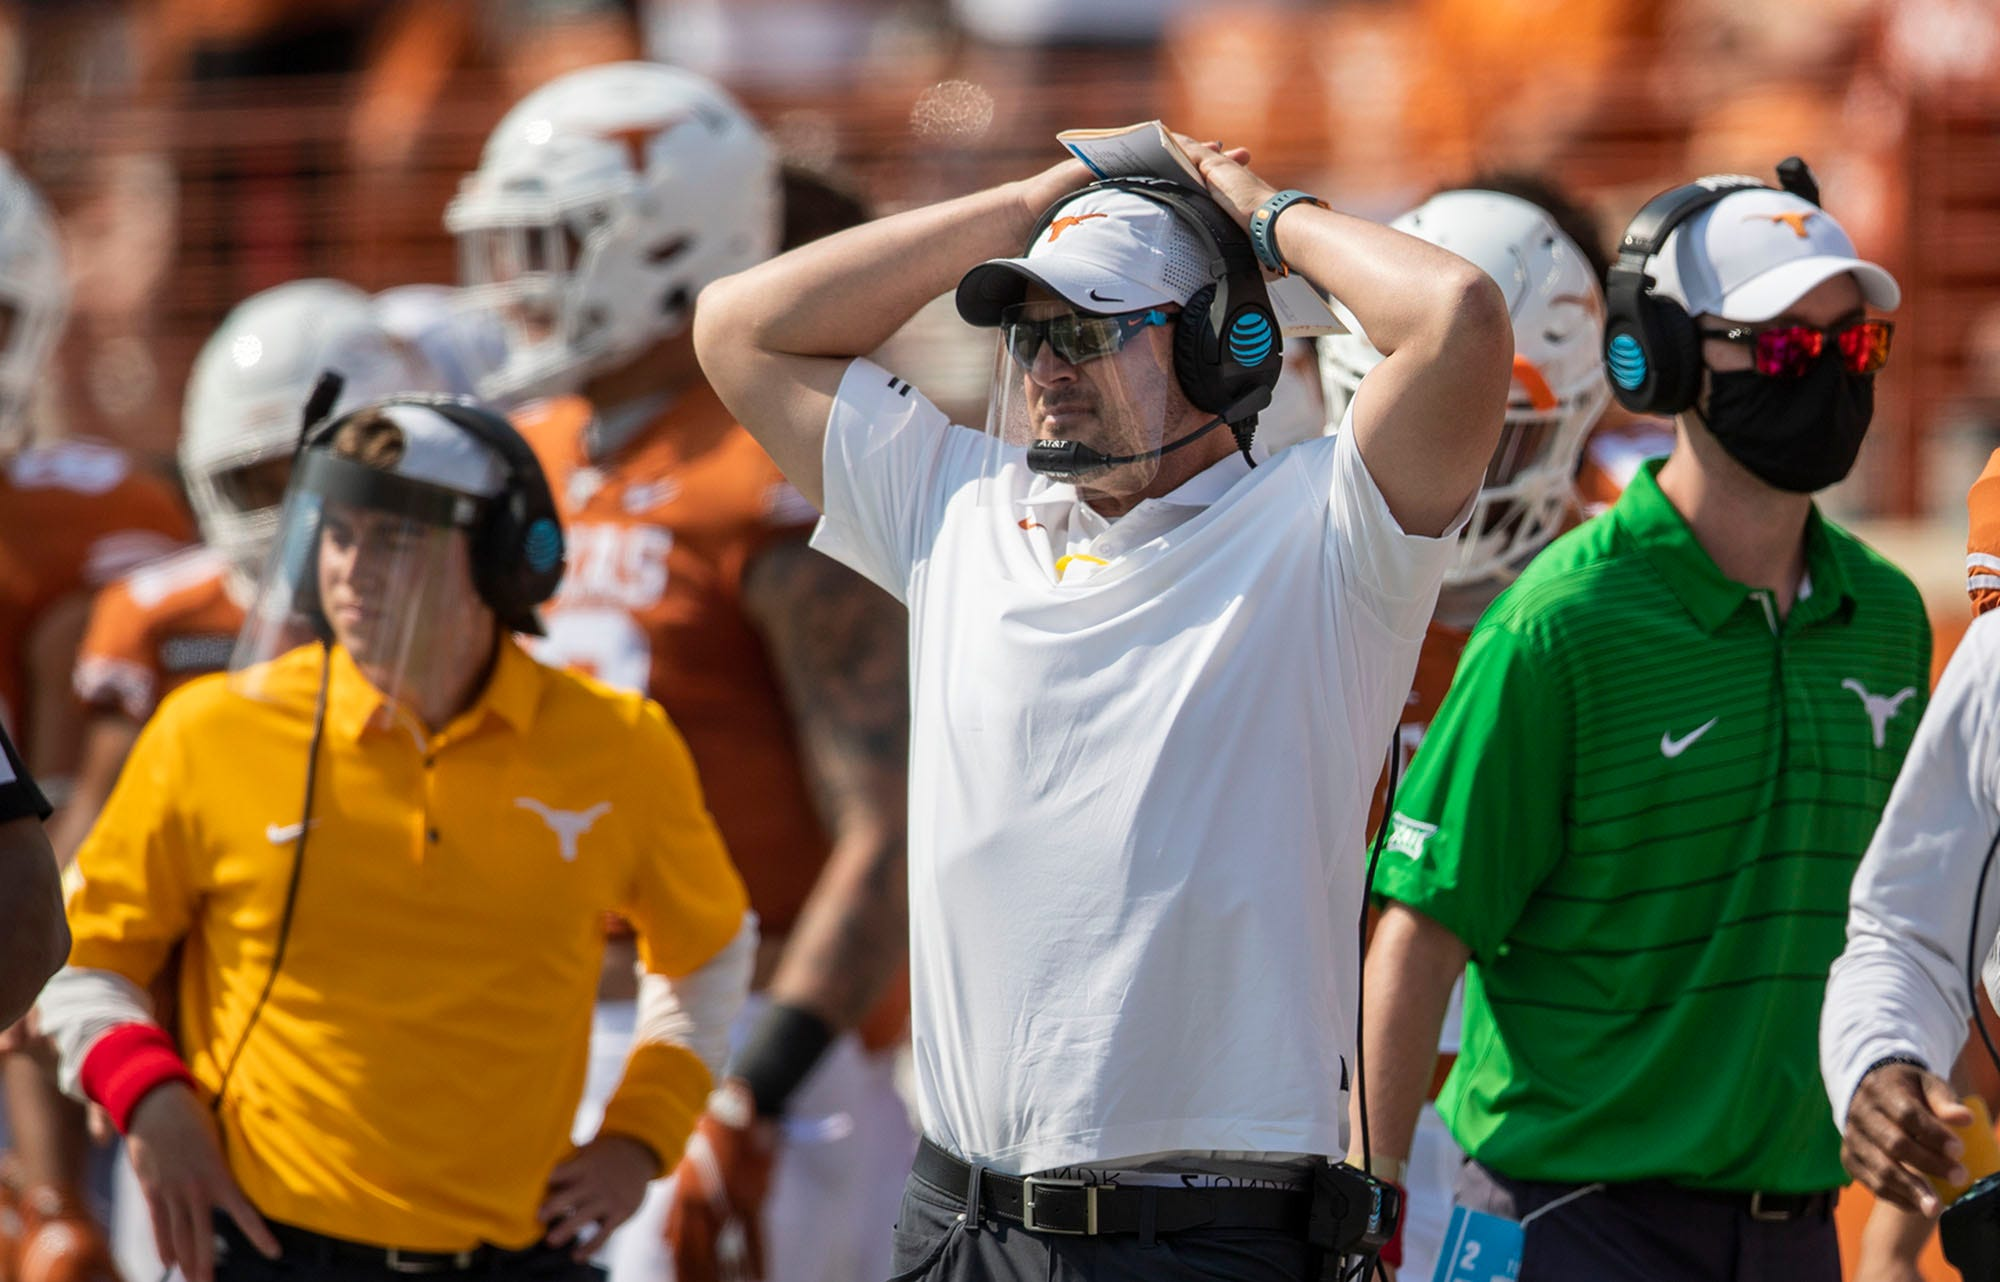 Analysis: No. 9 Longhorns must start holding themselves accountable, before it's too late